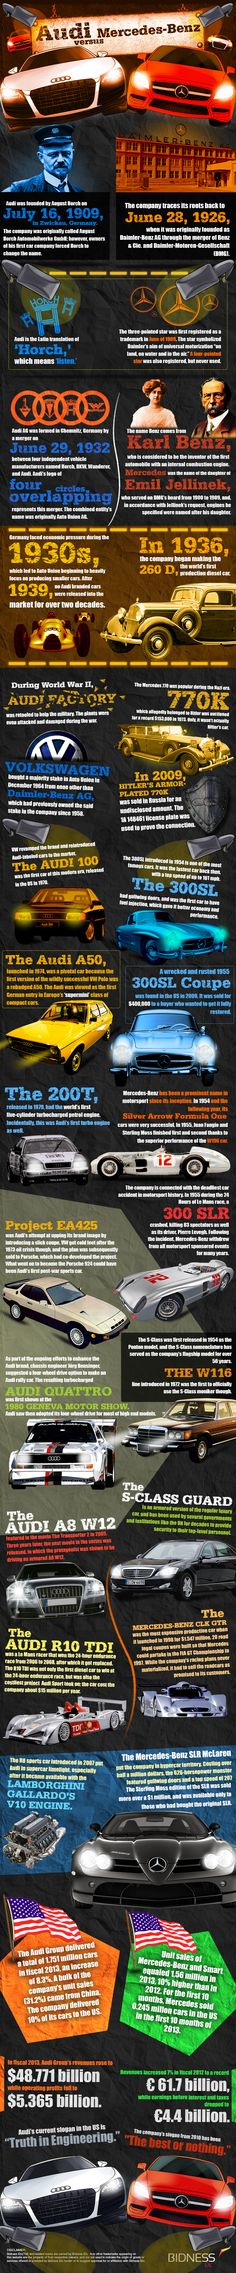 Which is better, Audi AG or Mercedes-Benz? History, Famous cars, Fun Facts